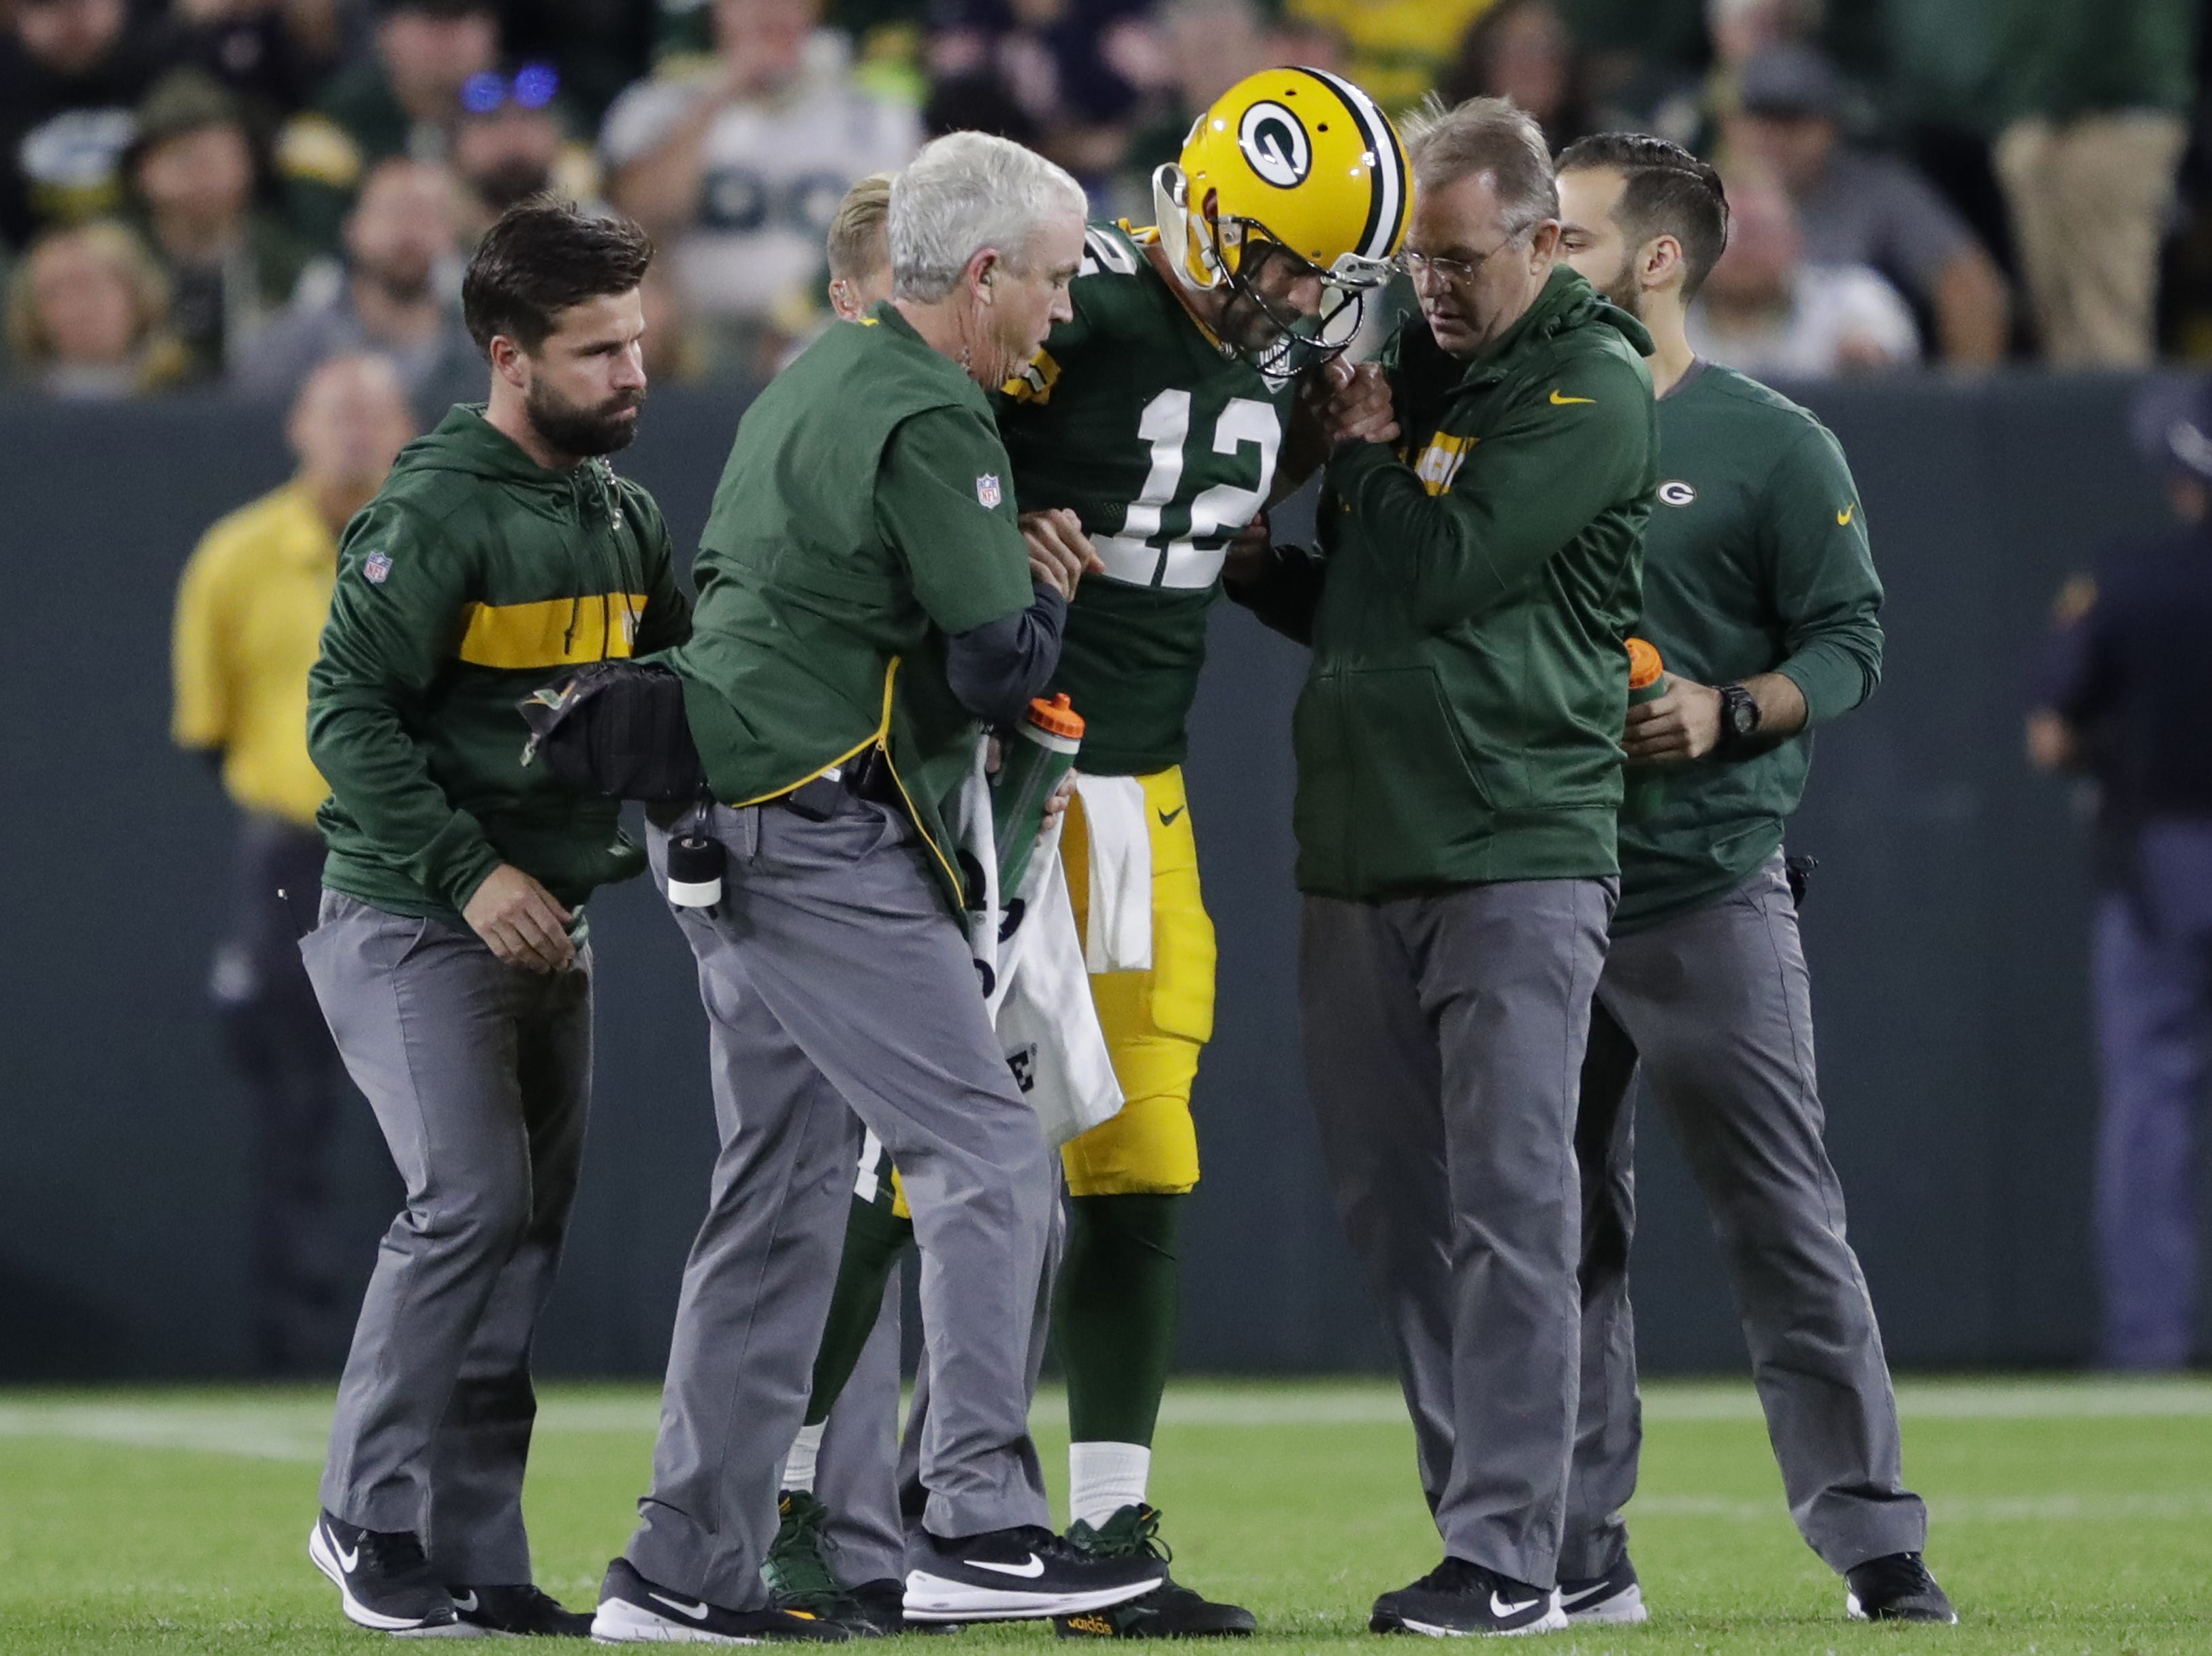 Green Bay Packers quarterback Aaron Rodgers (12) is helped off the field after getting injured during the second quarter against the Chicago Bears Sunday, Sept. 9, 2018, at Lambeau Field in Green Bay, Wis.